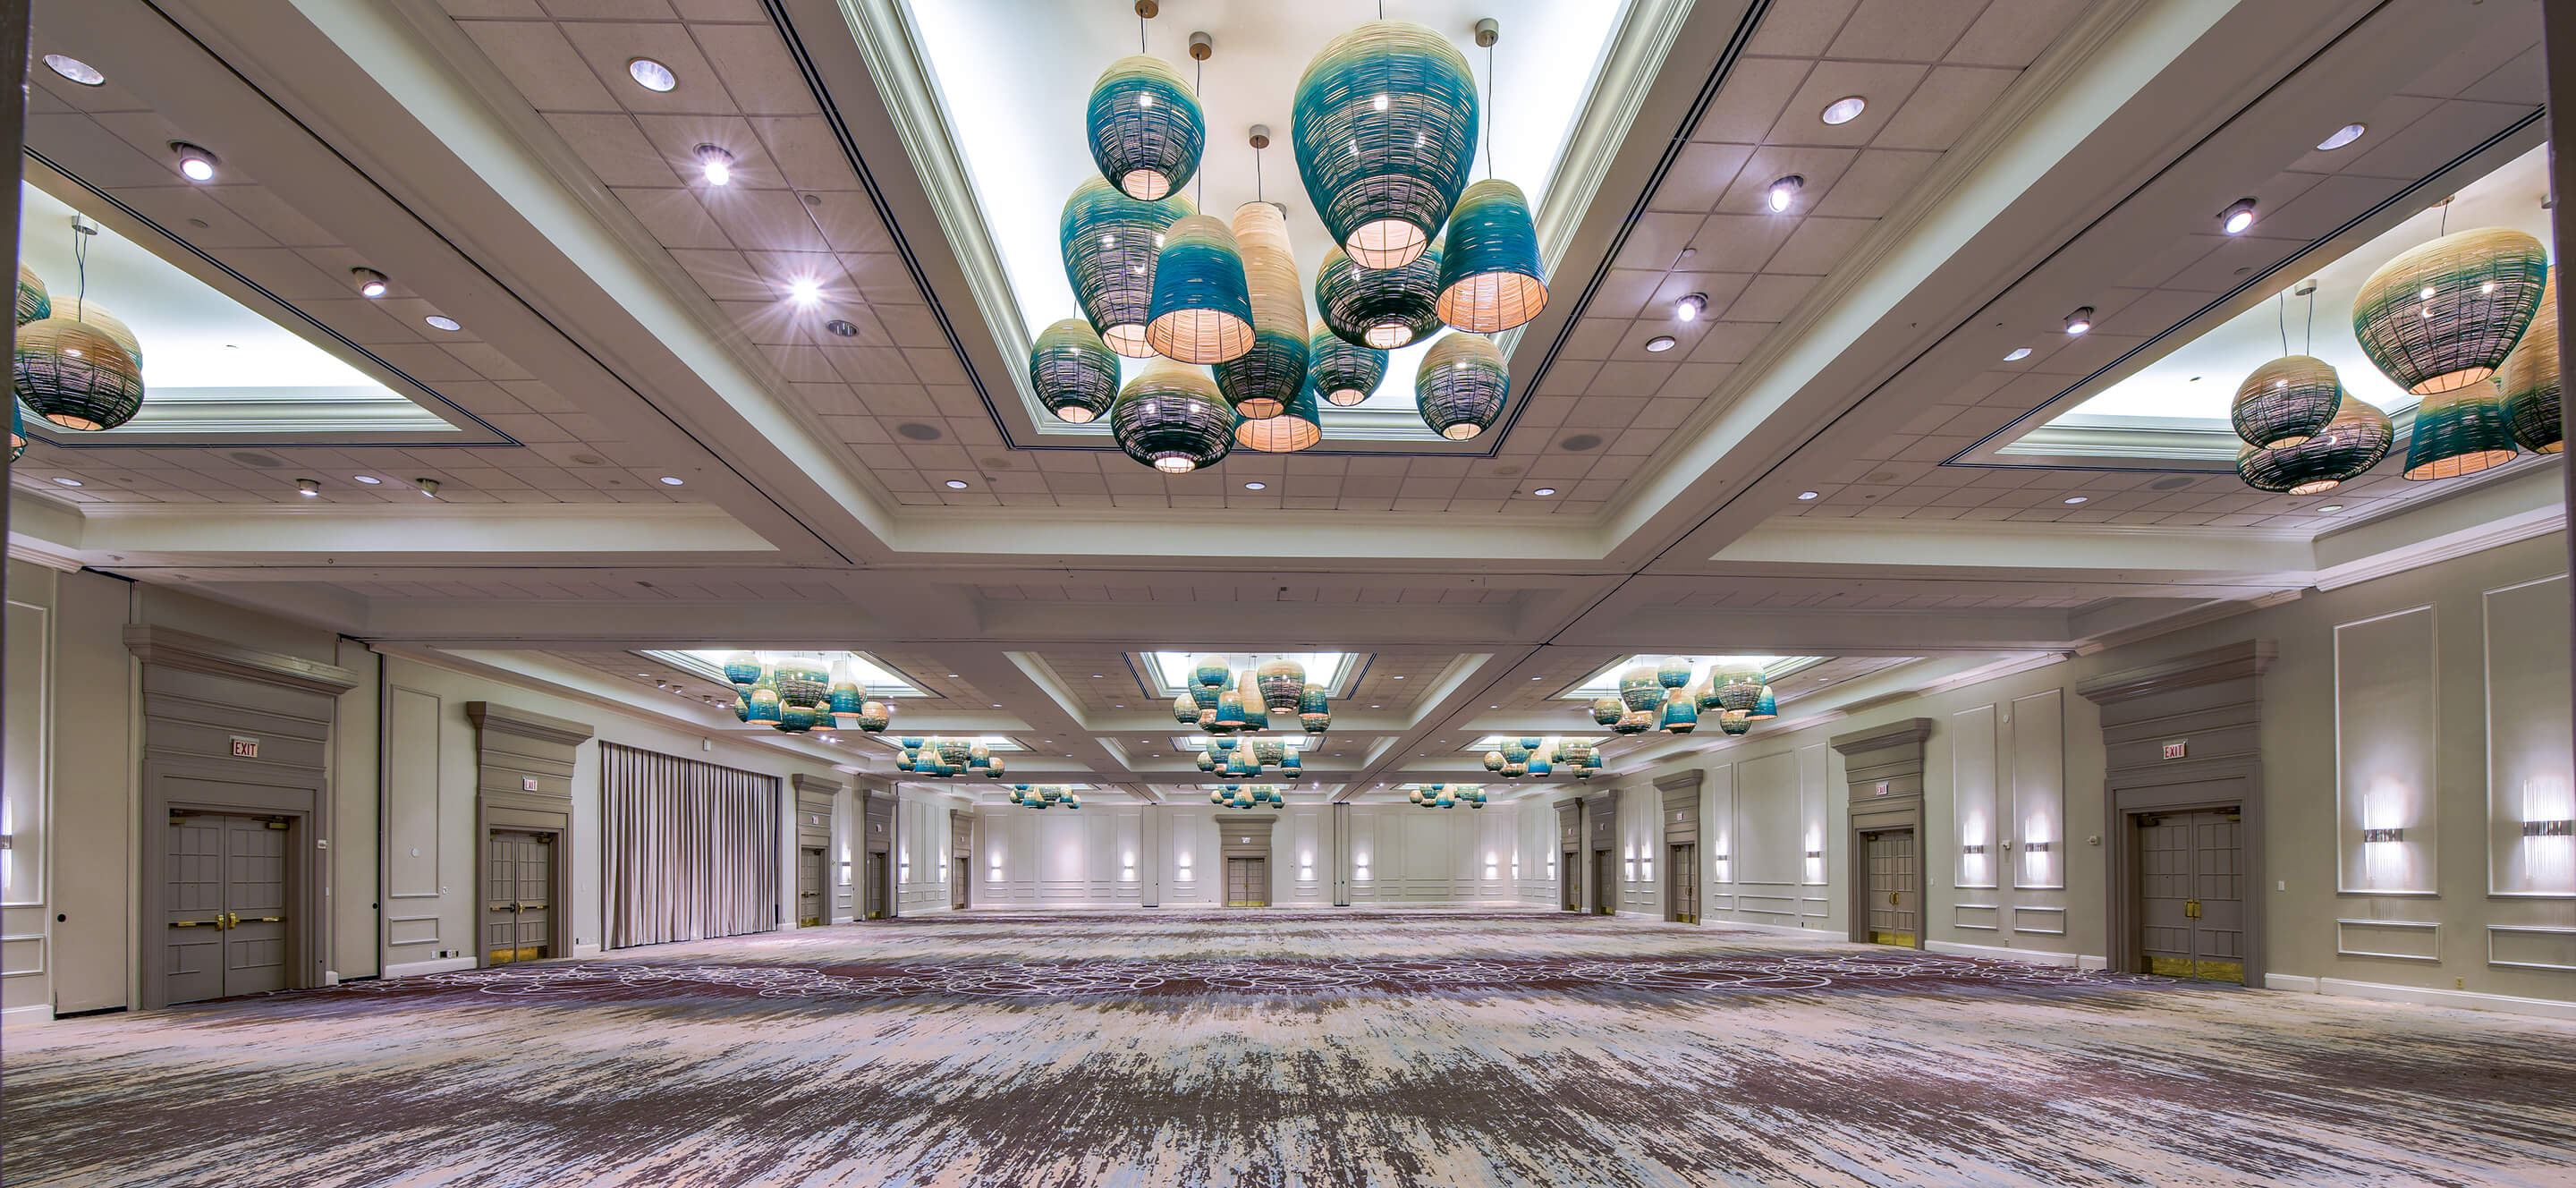 Royal Palm Ballroom